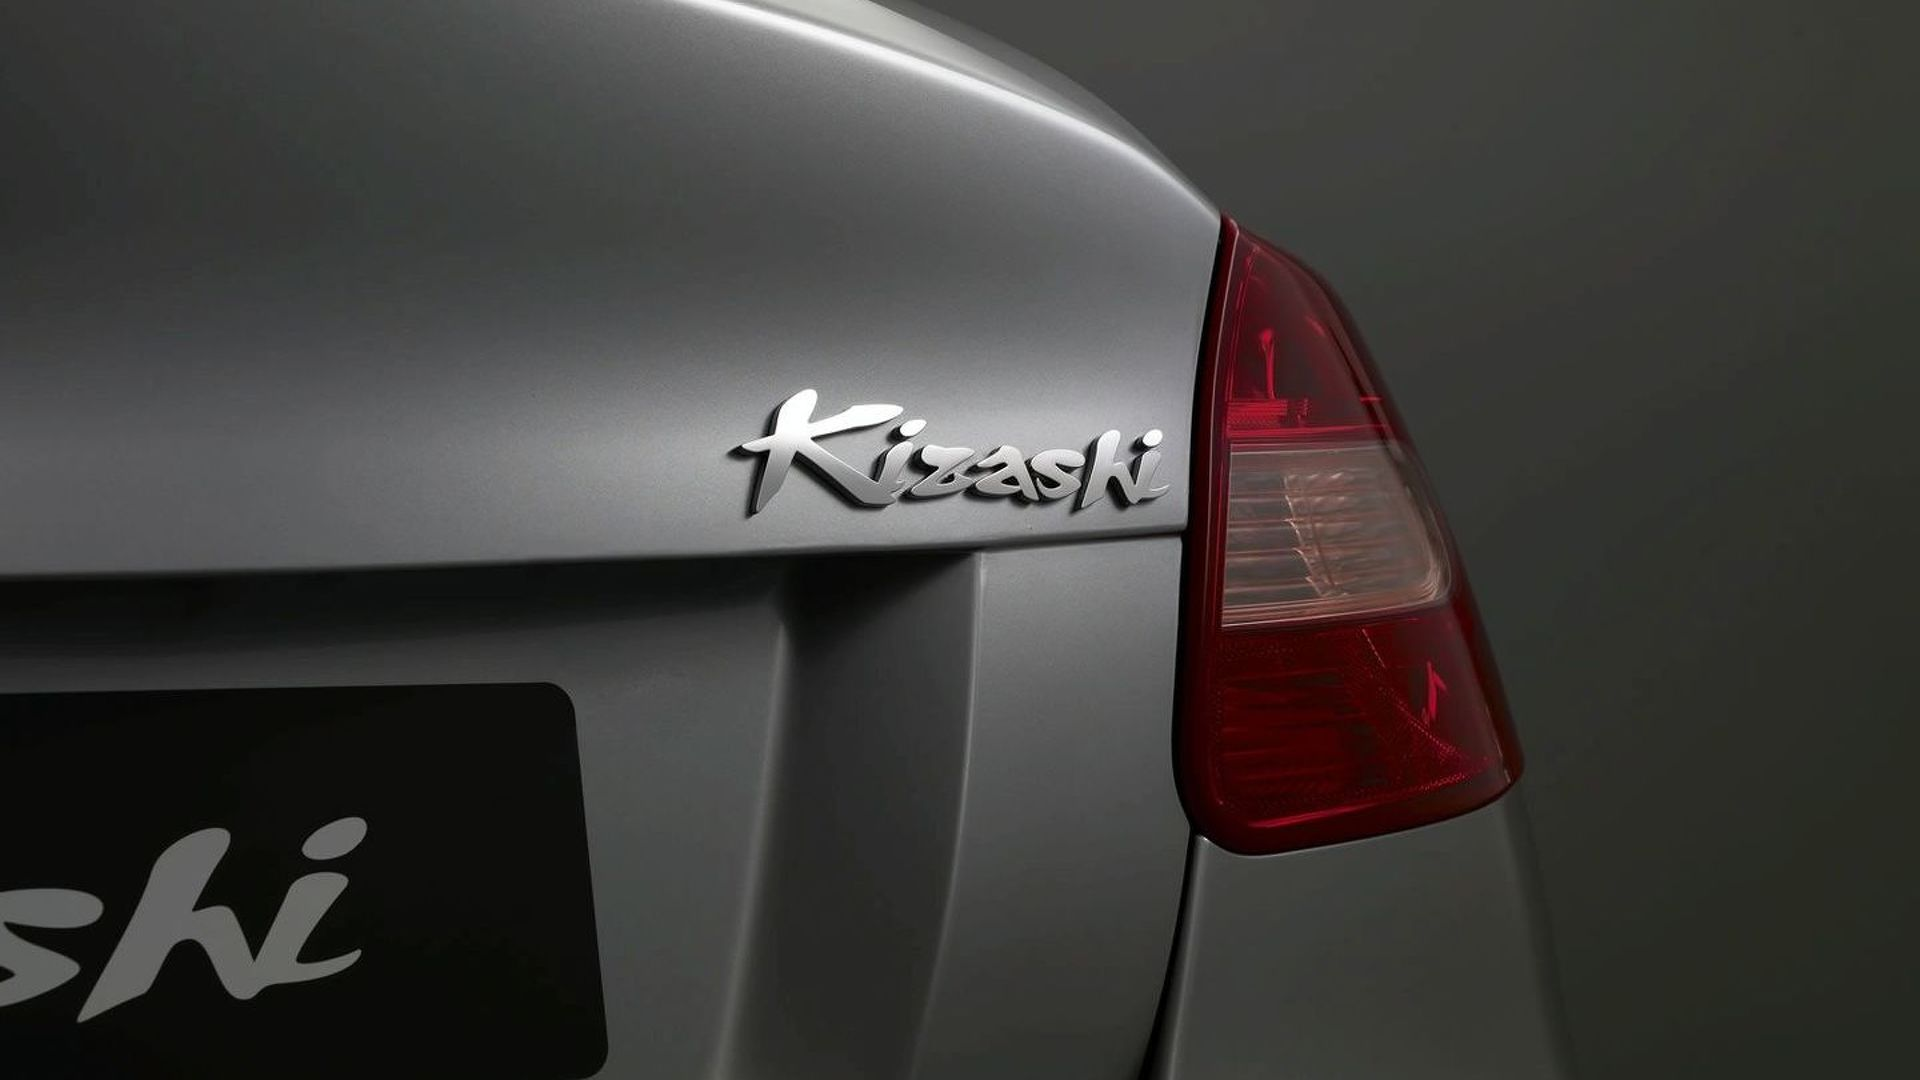 2010 Suzuki Kizashi Sedan Officially Revealed